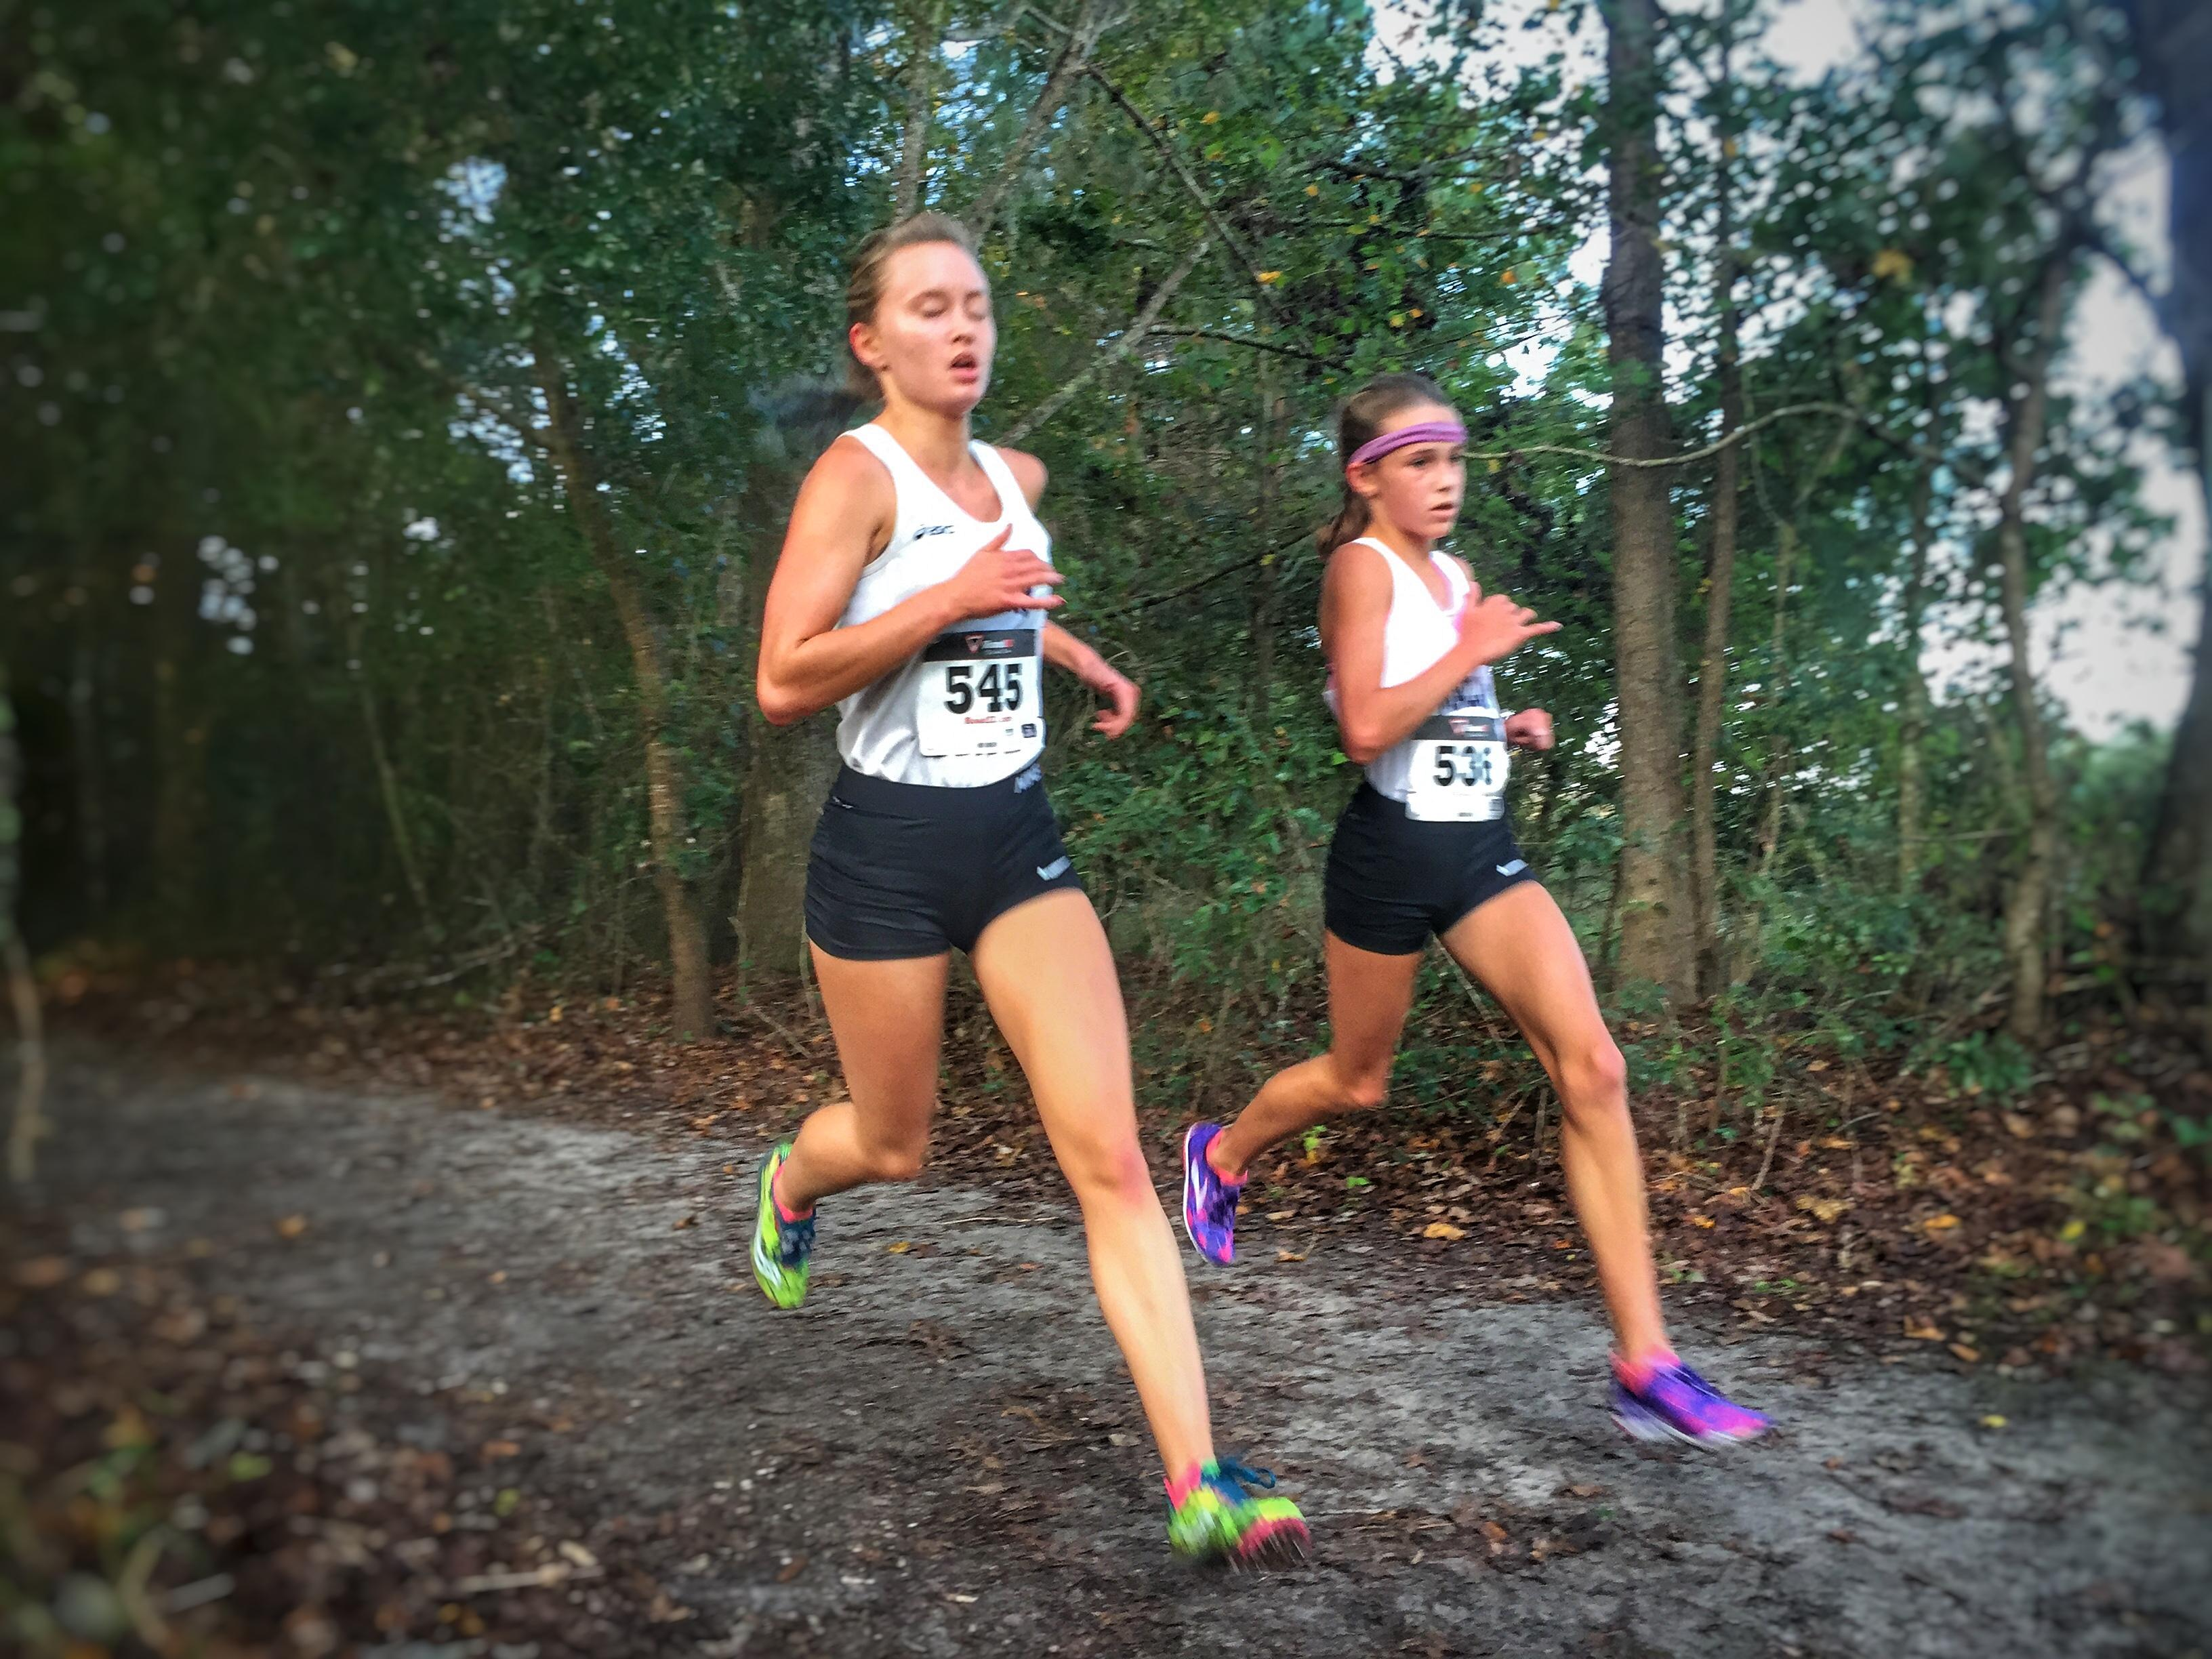 Maclay senior Caroline Willis (left) and seventh grader Lindsay James exit the woods past the mile mark of Saturday's Region 1-1A race at Alligator Lake in Lake City. James was third and Willis was fifth as the Marauders won a region title.